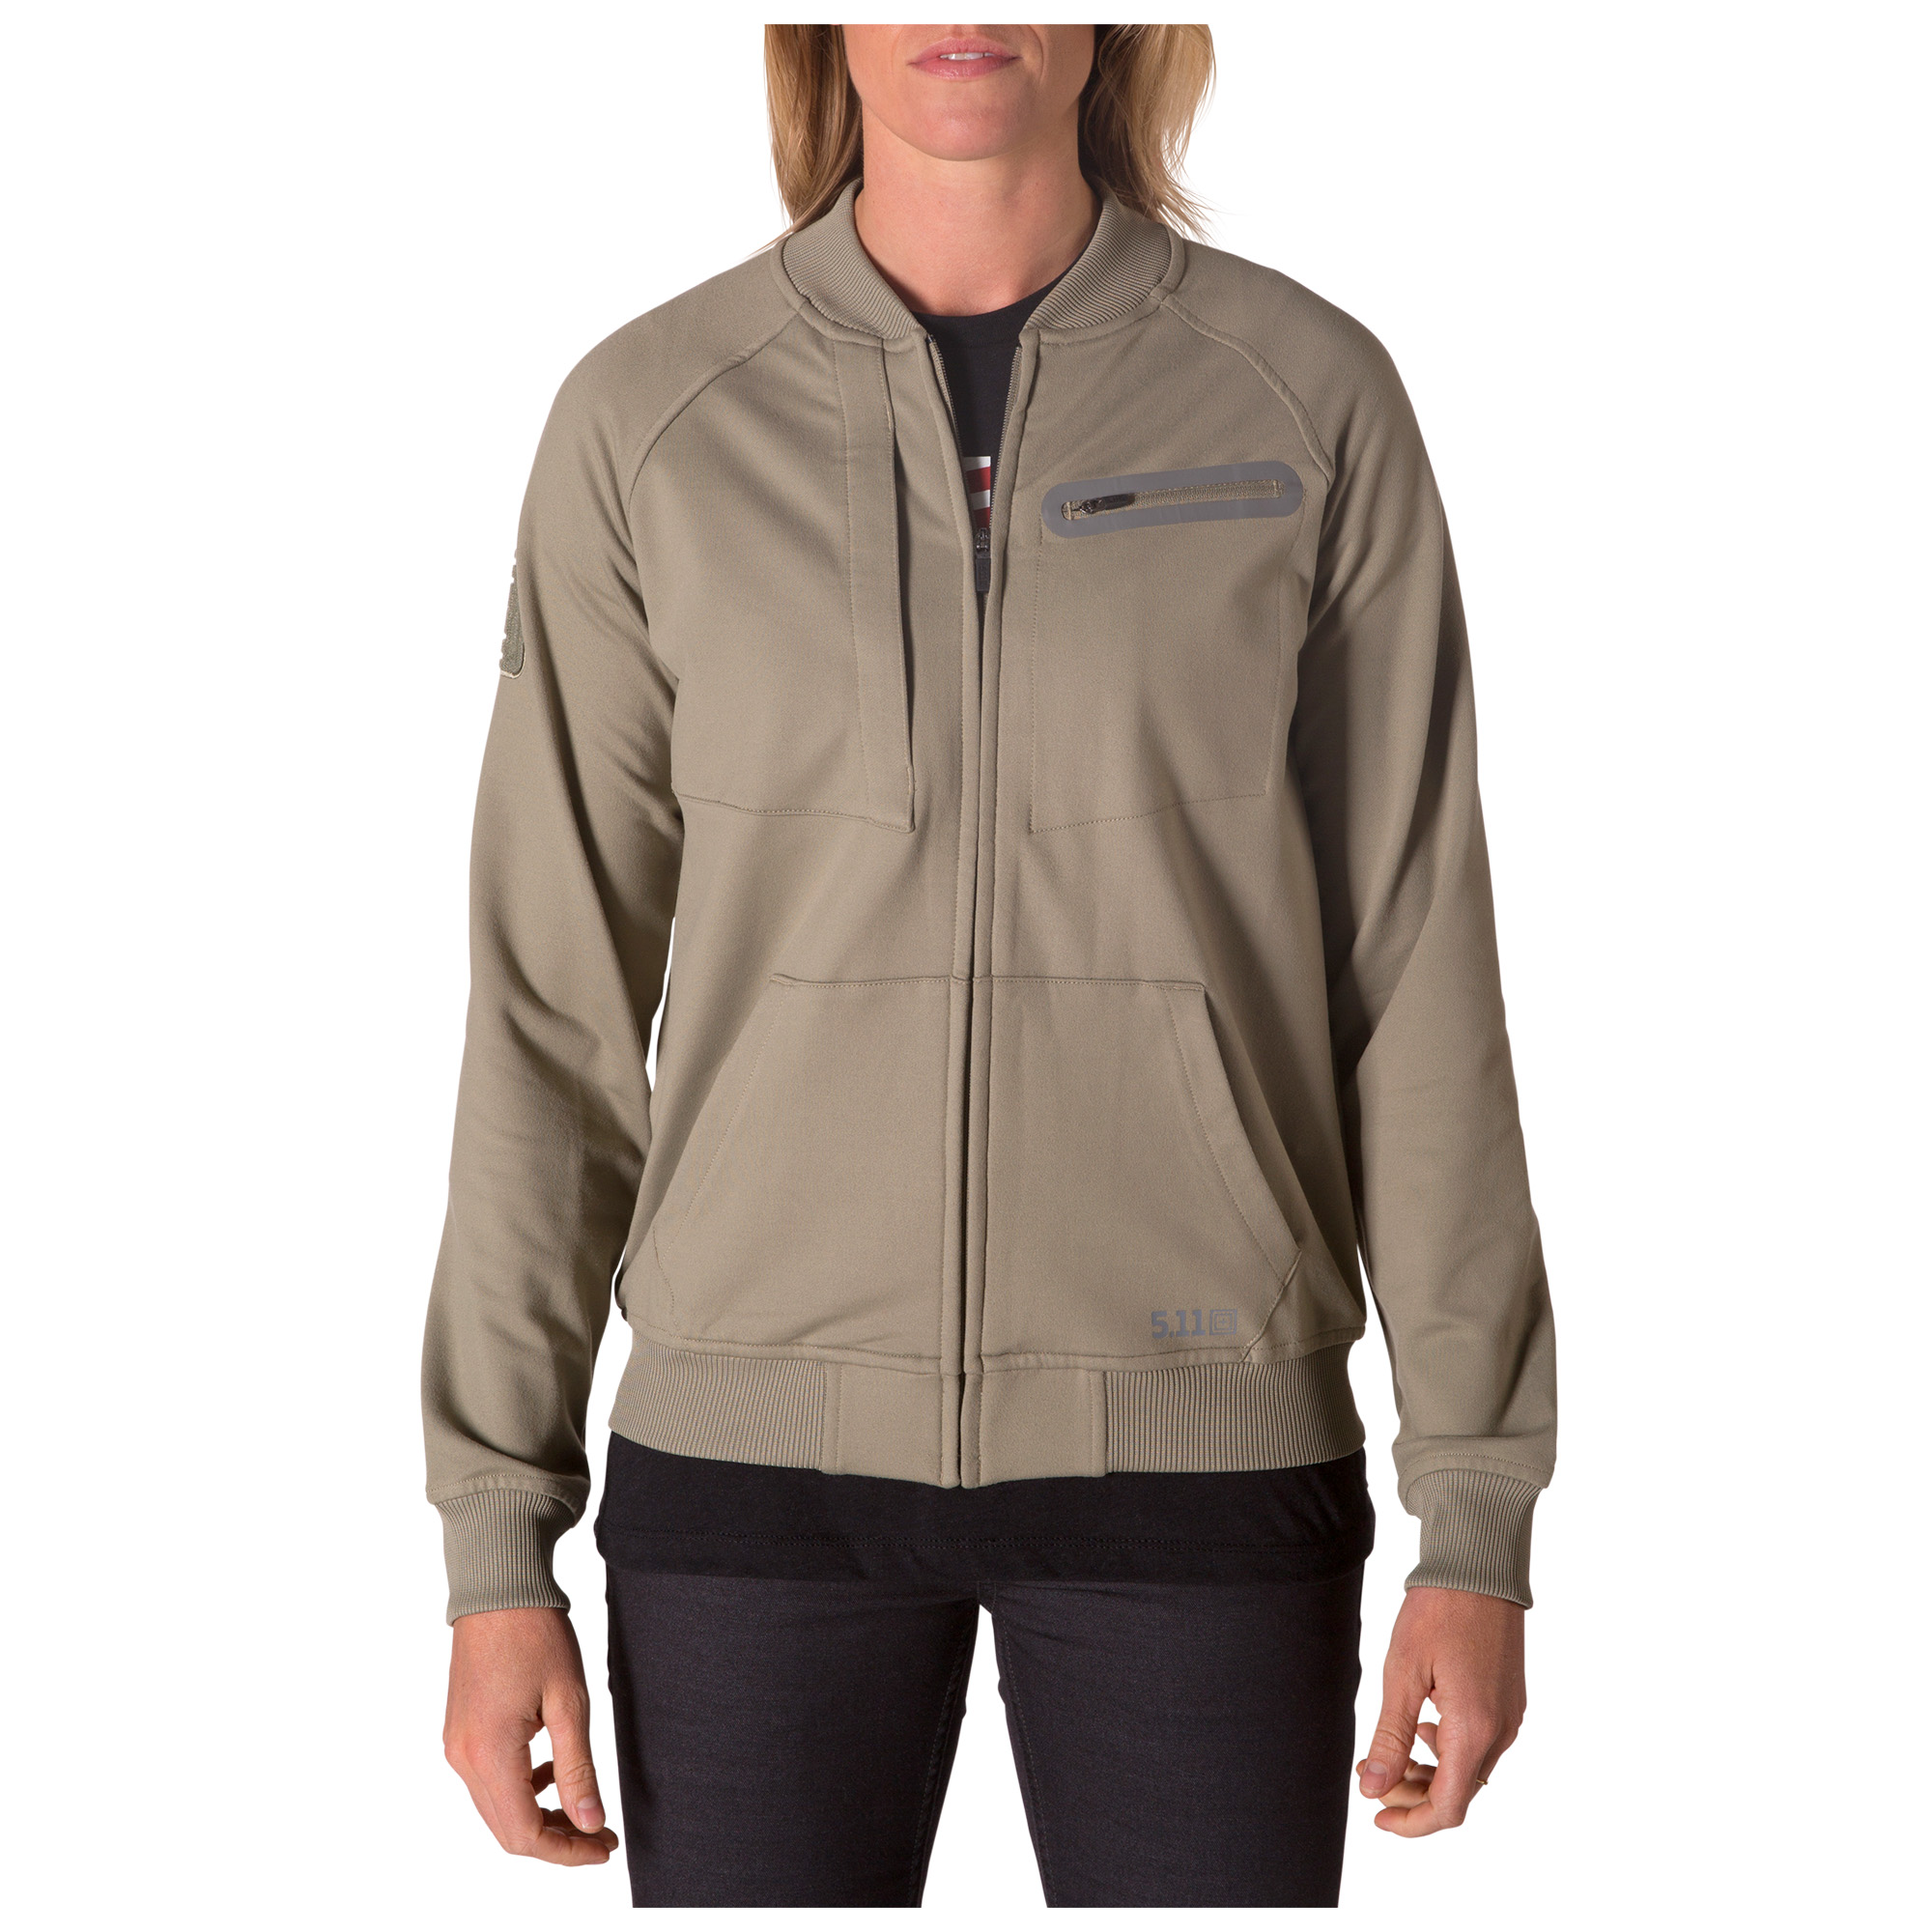 5.11 Tactical Women's Charisma Bomber Jacket (Grey)